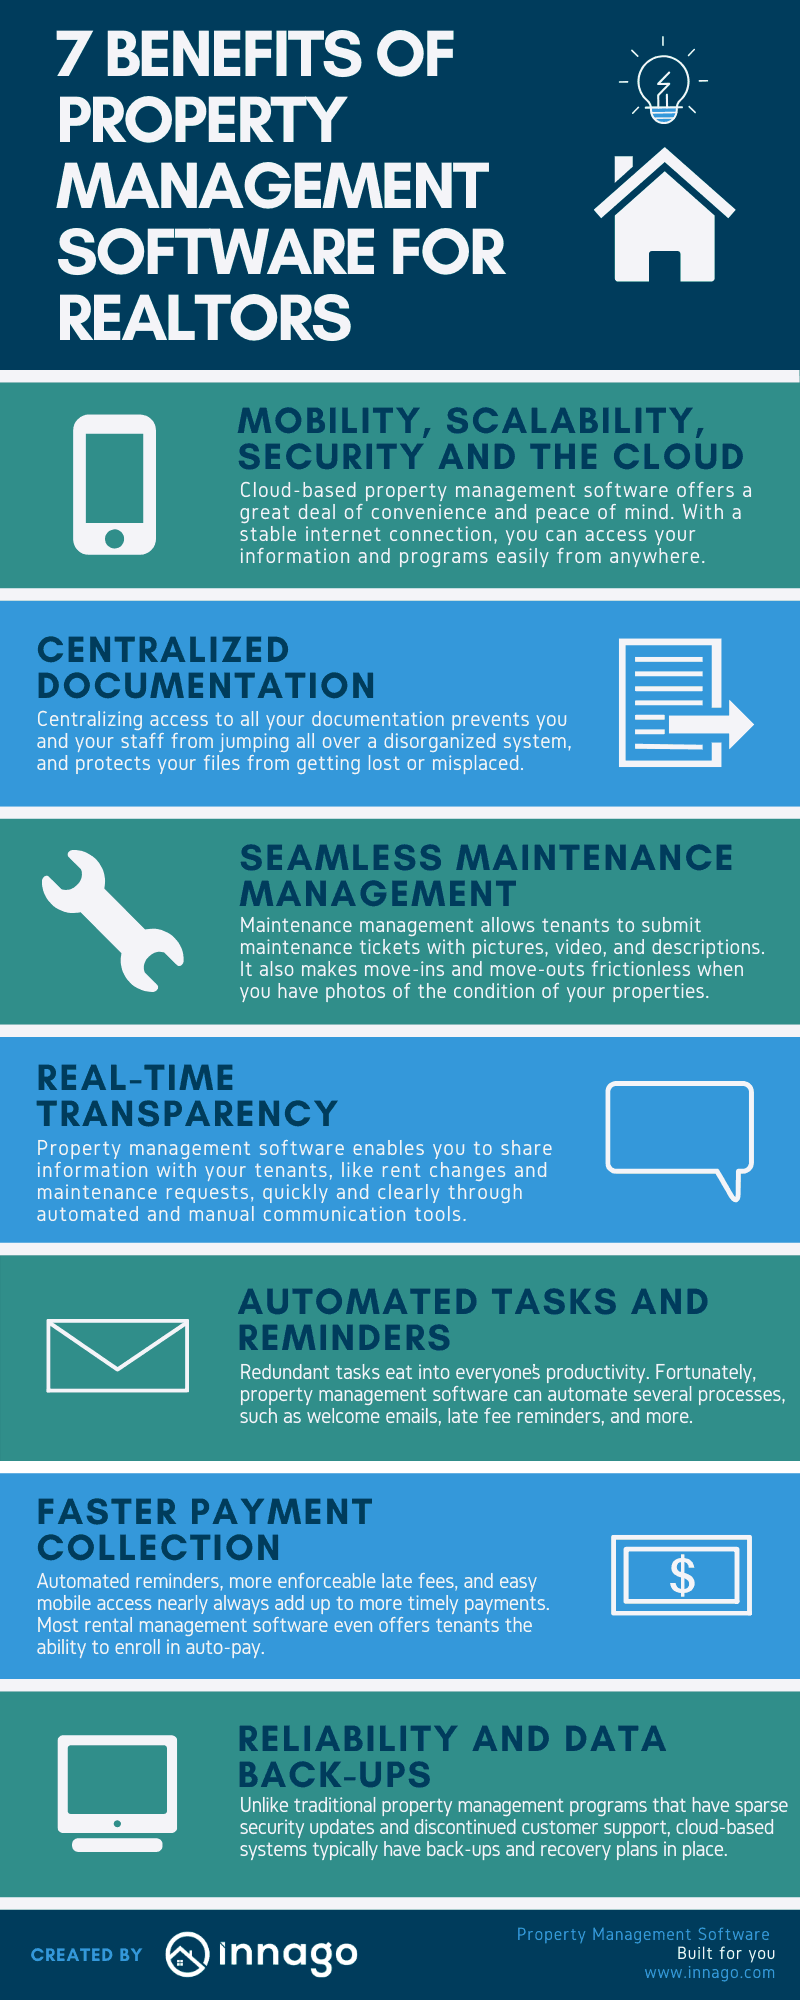 7 Benefits of Property Management Software for Realtors